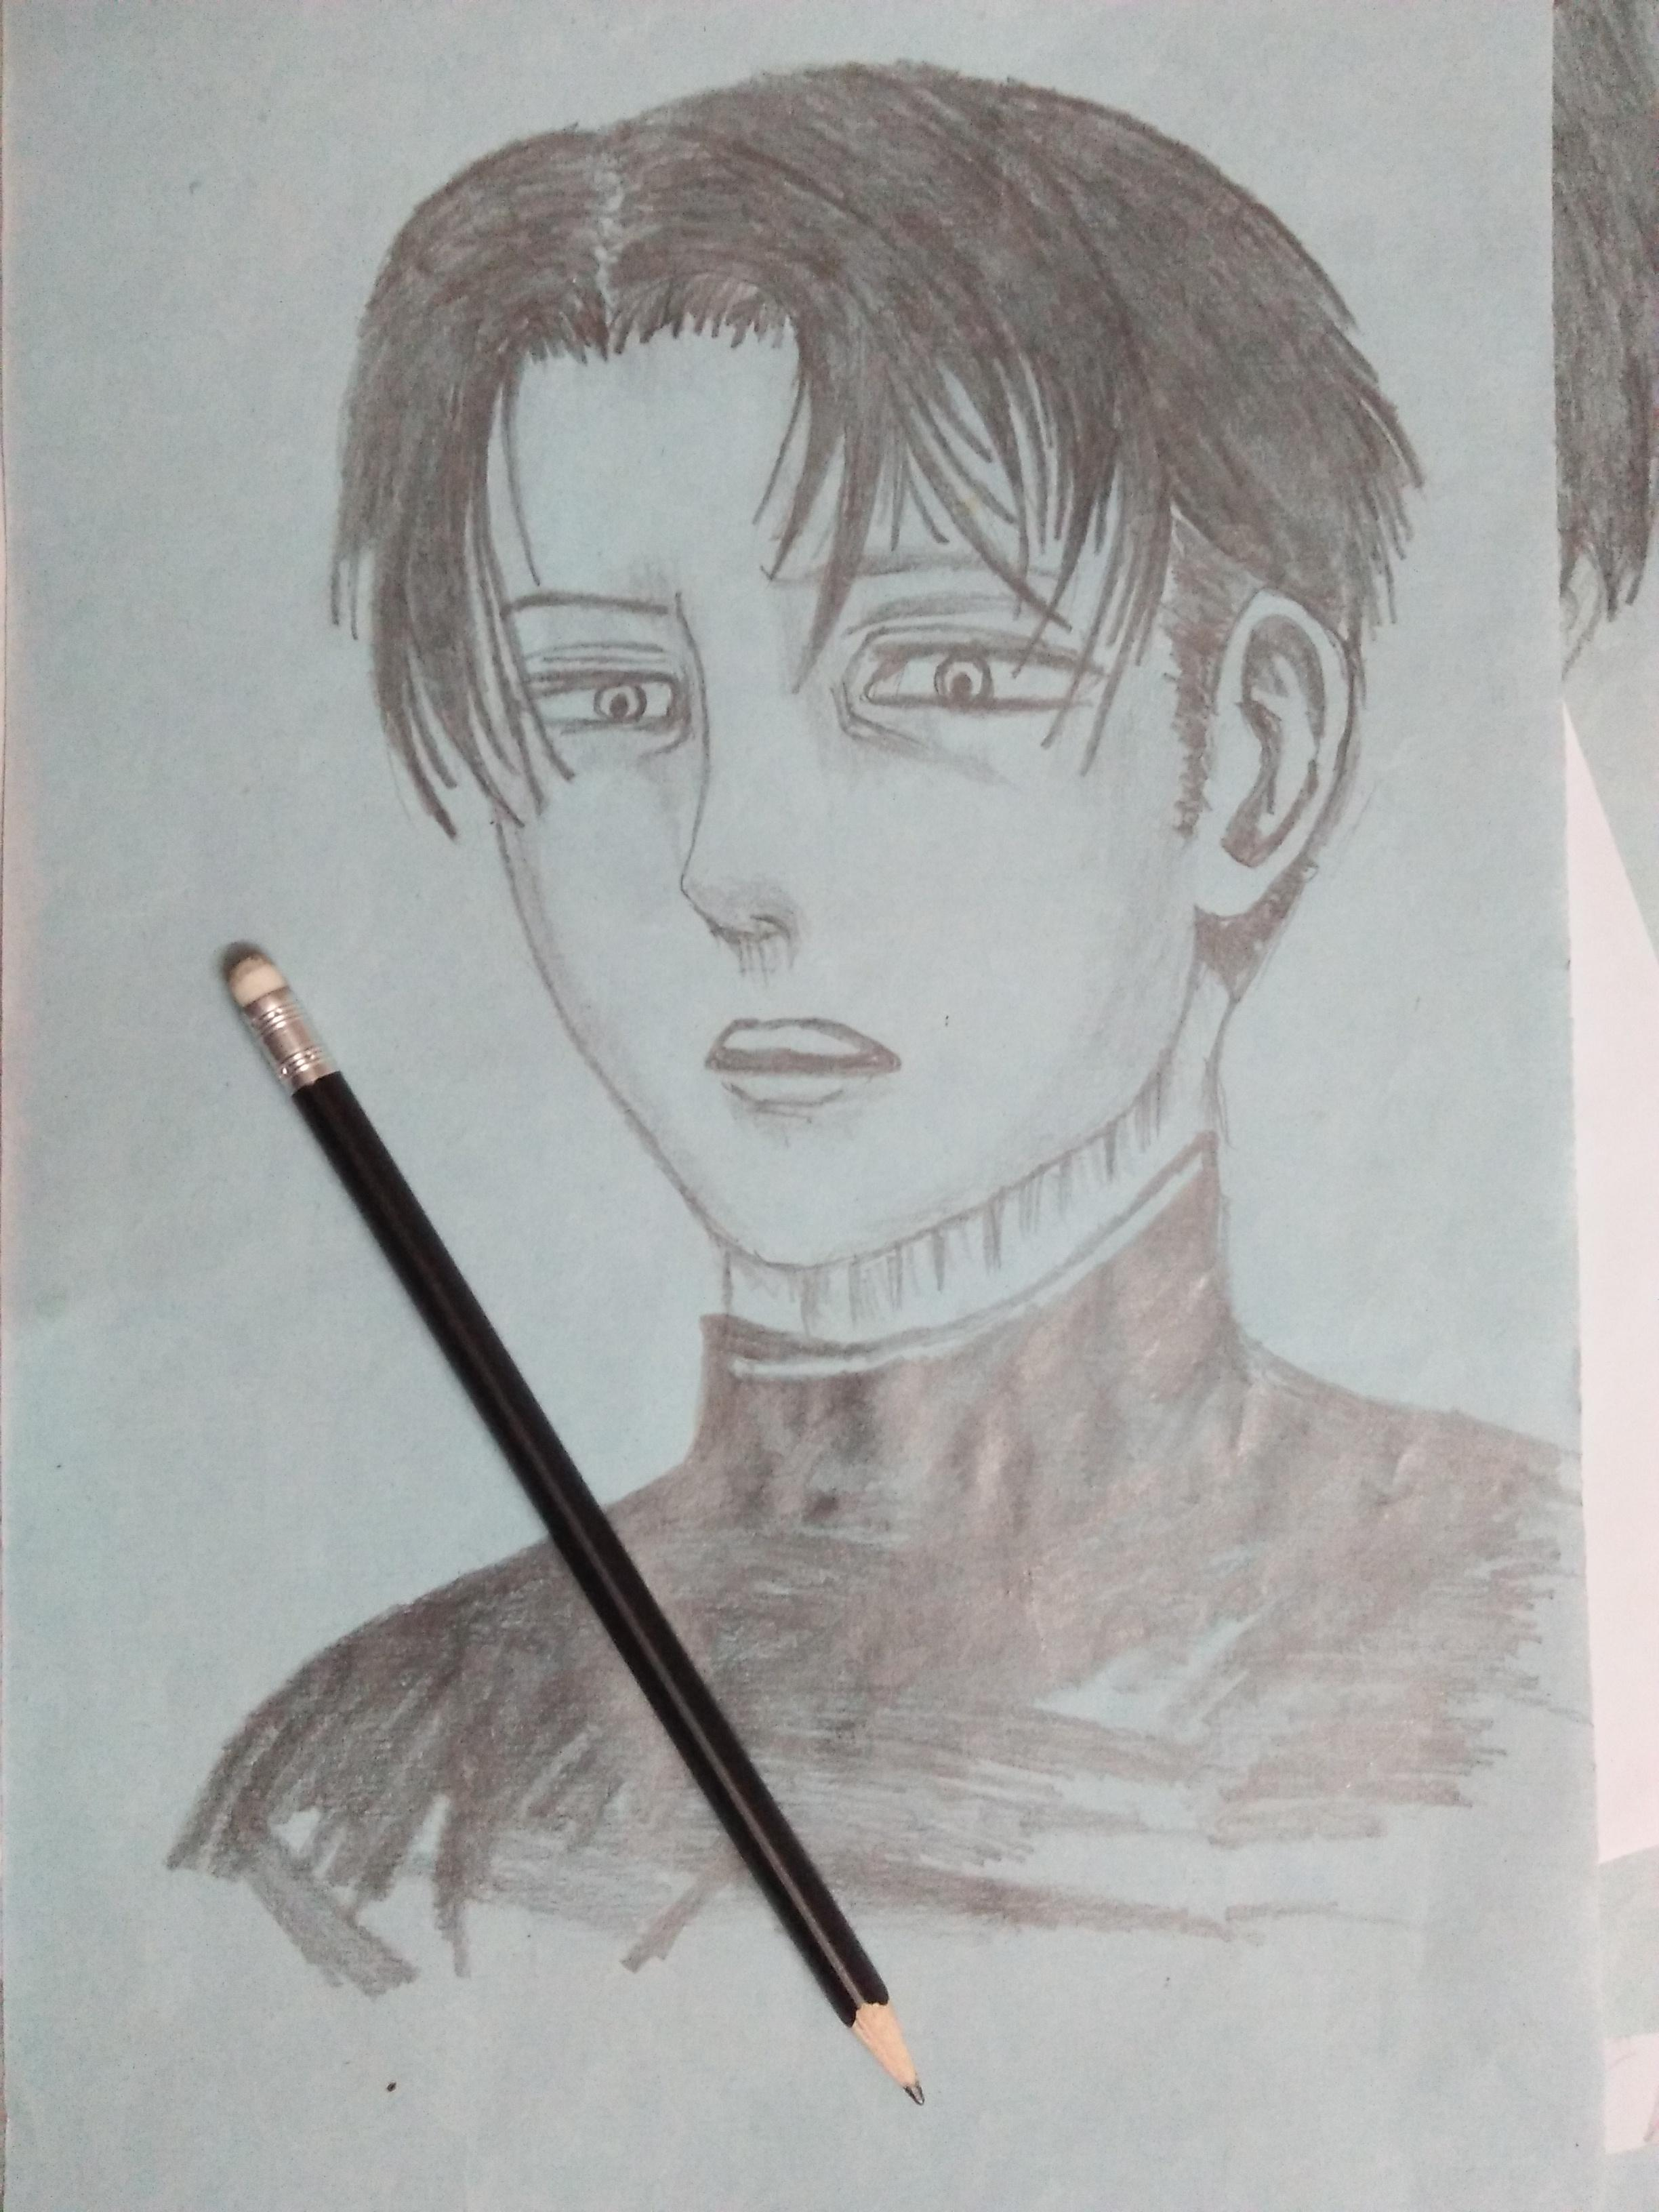 banner Levi drawing. I tried to copy